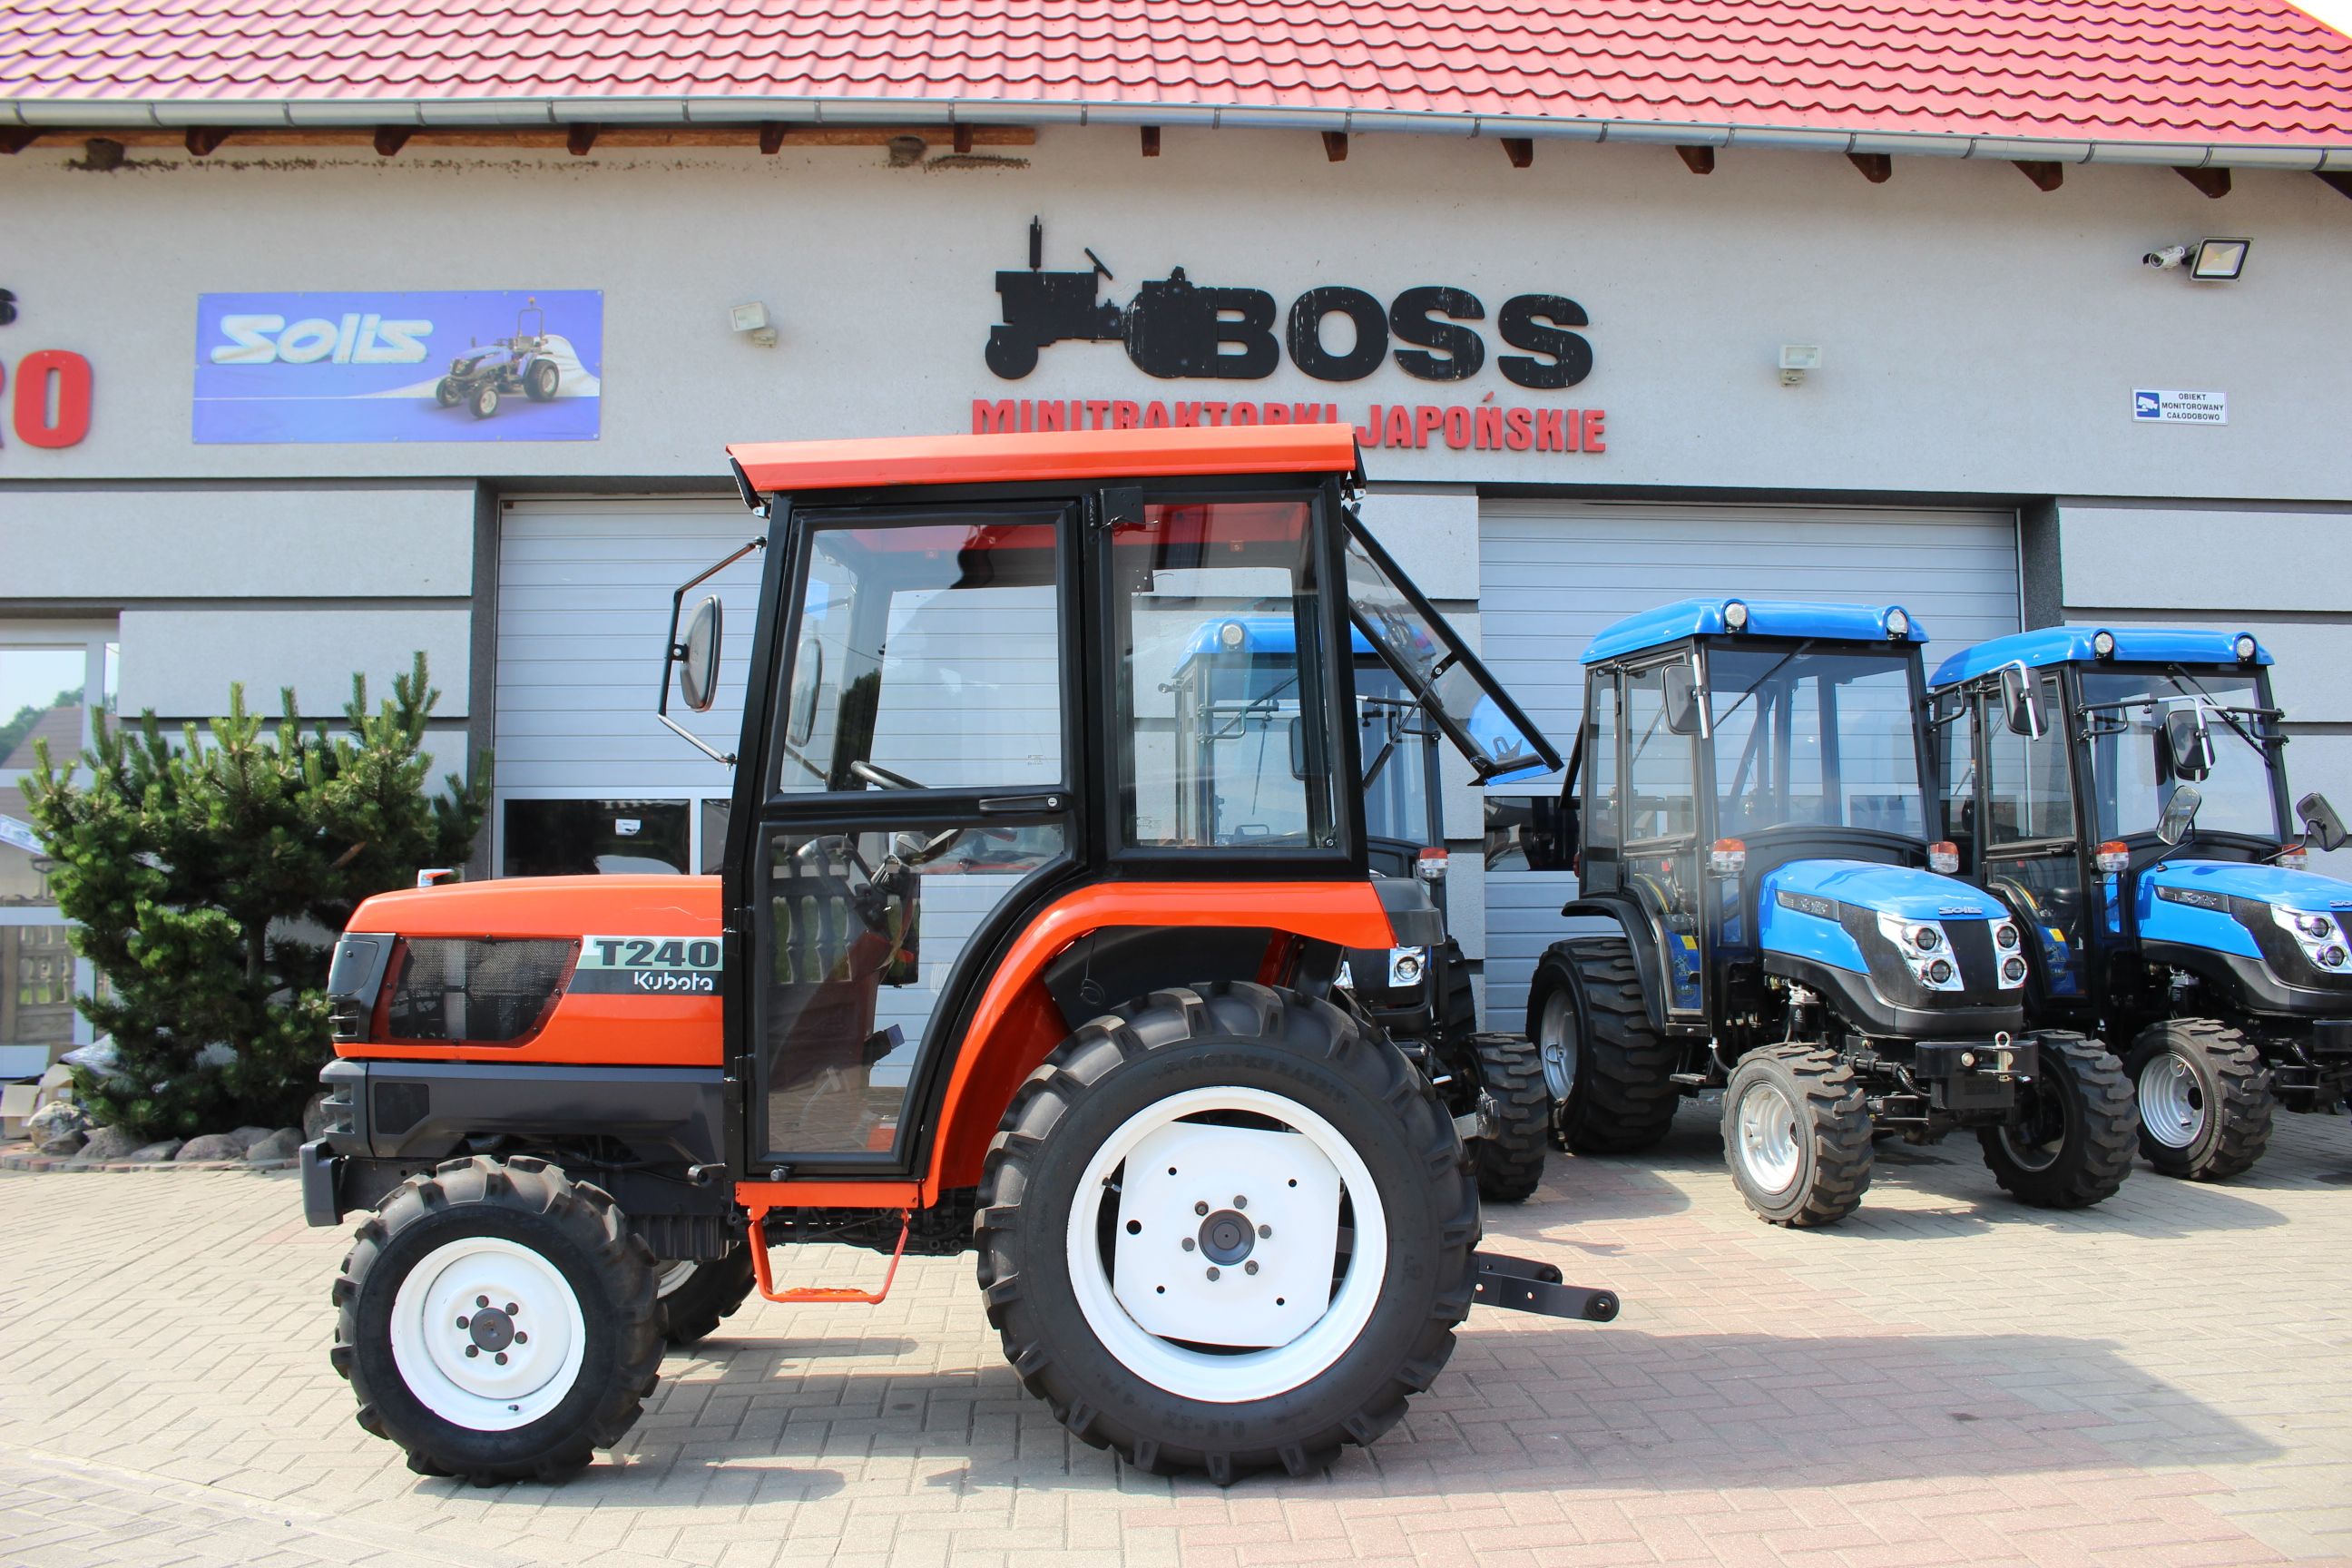 03 NOWY MODEL Kubota T240DT